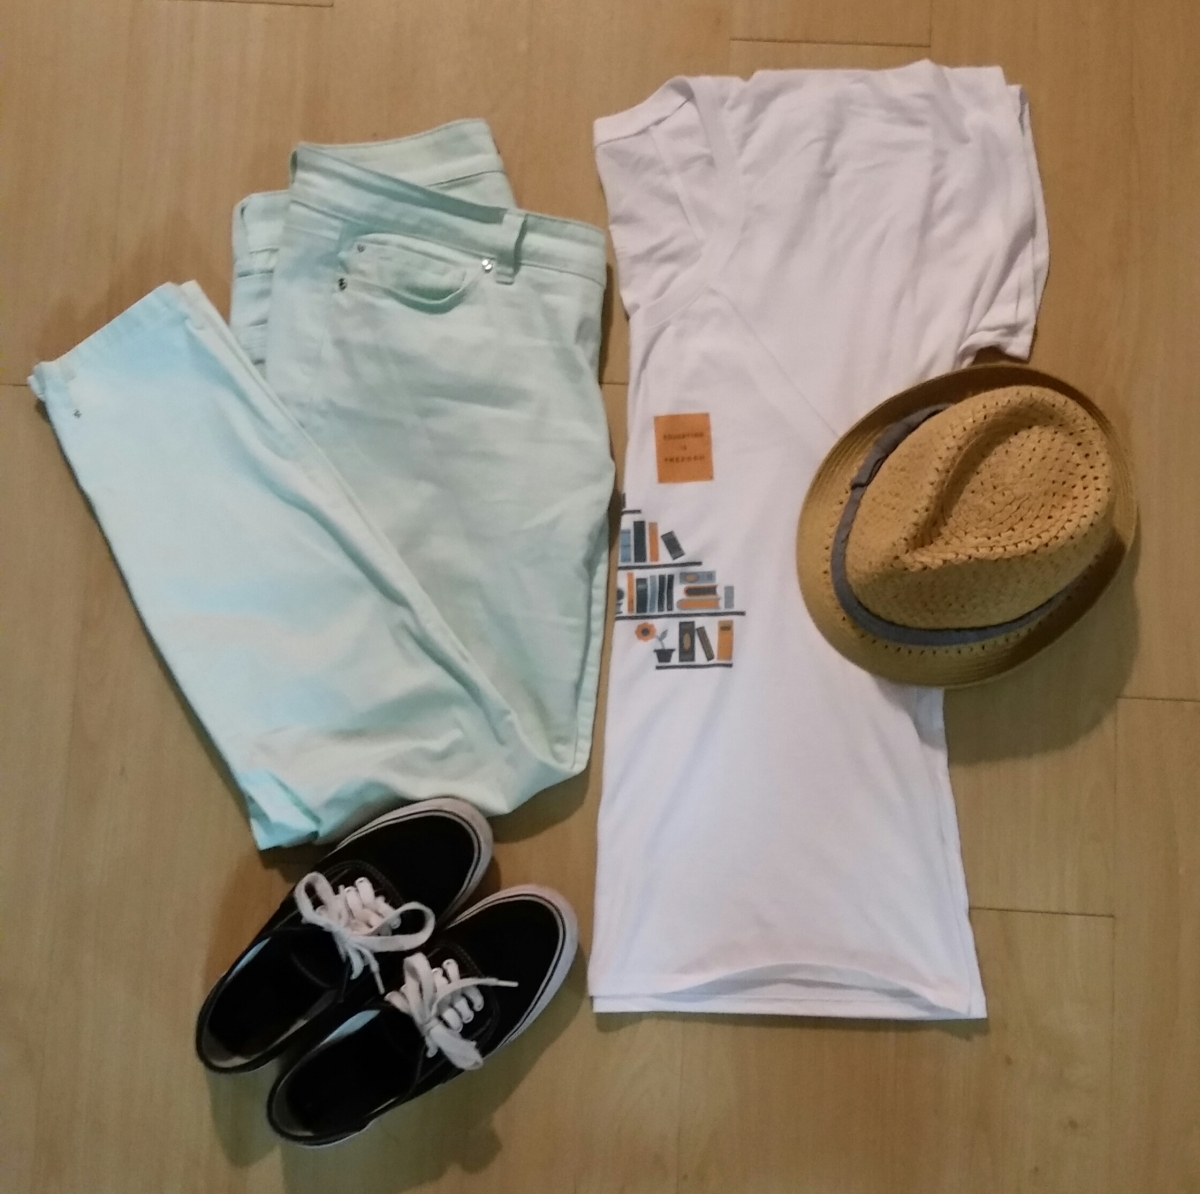 Casual outfit: Mint pants, Sevenly white shirt, straw hat, and black sneakers